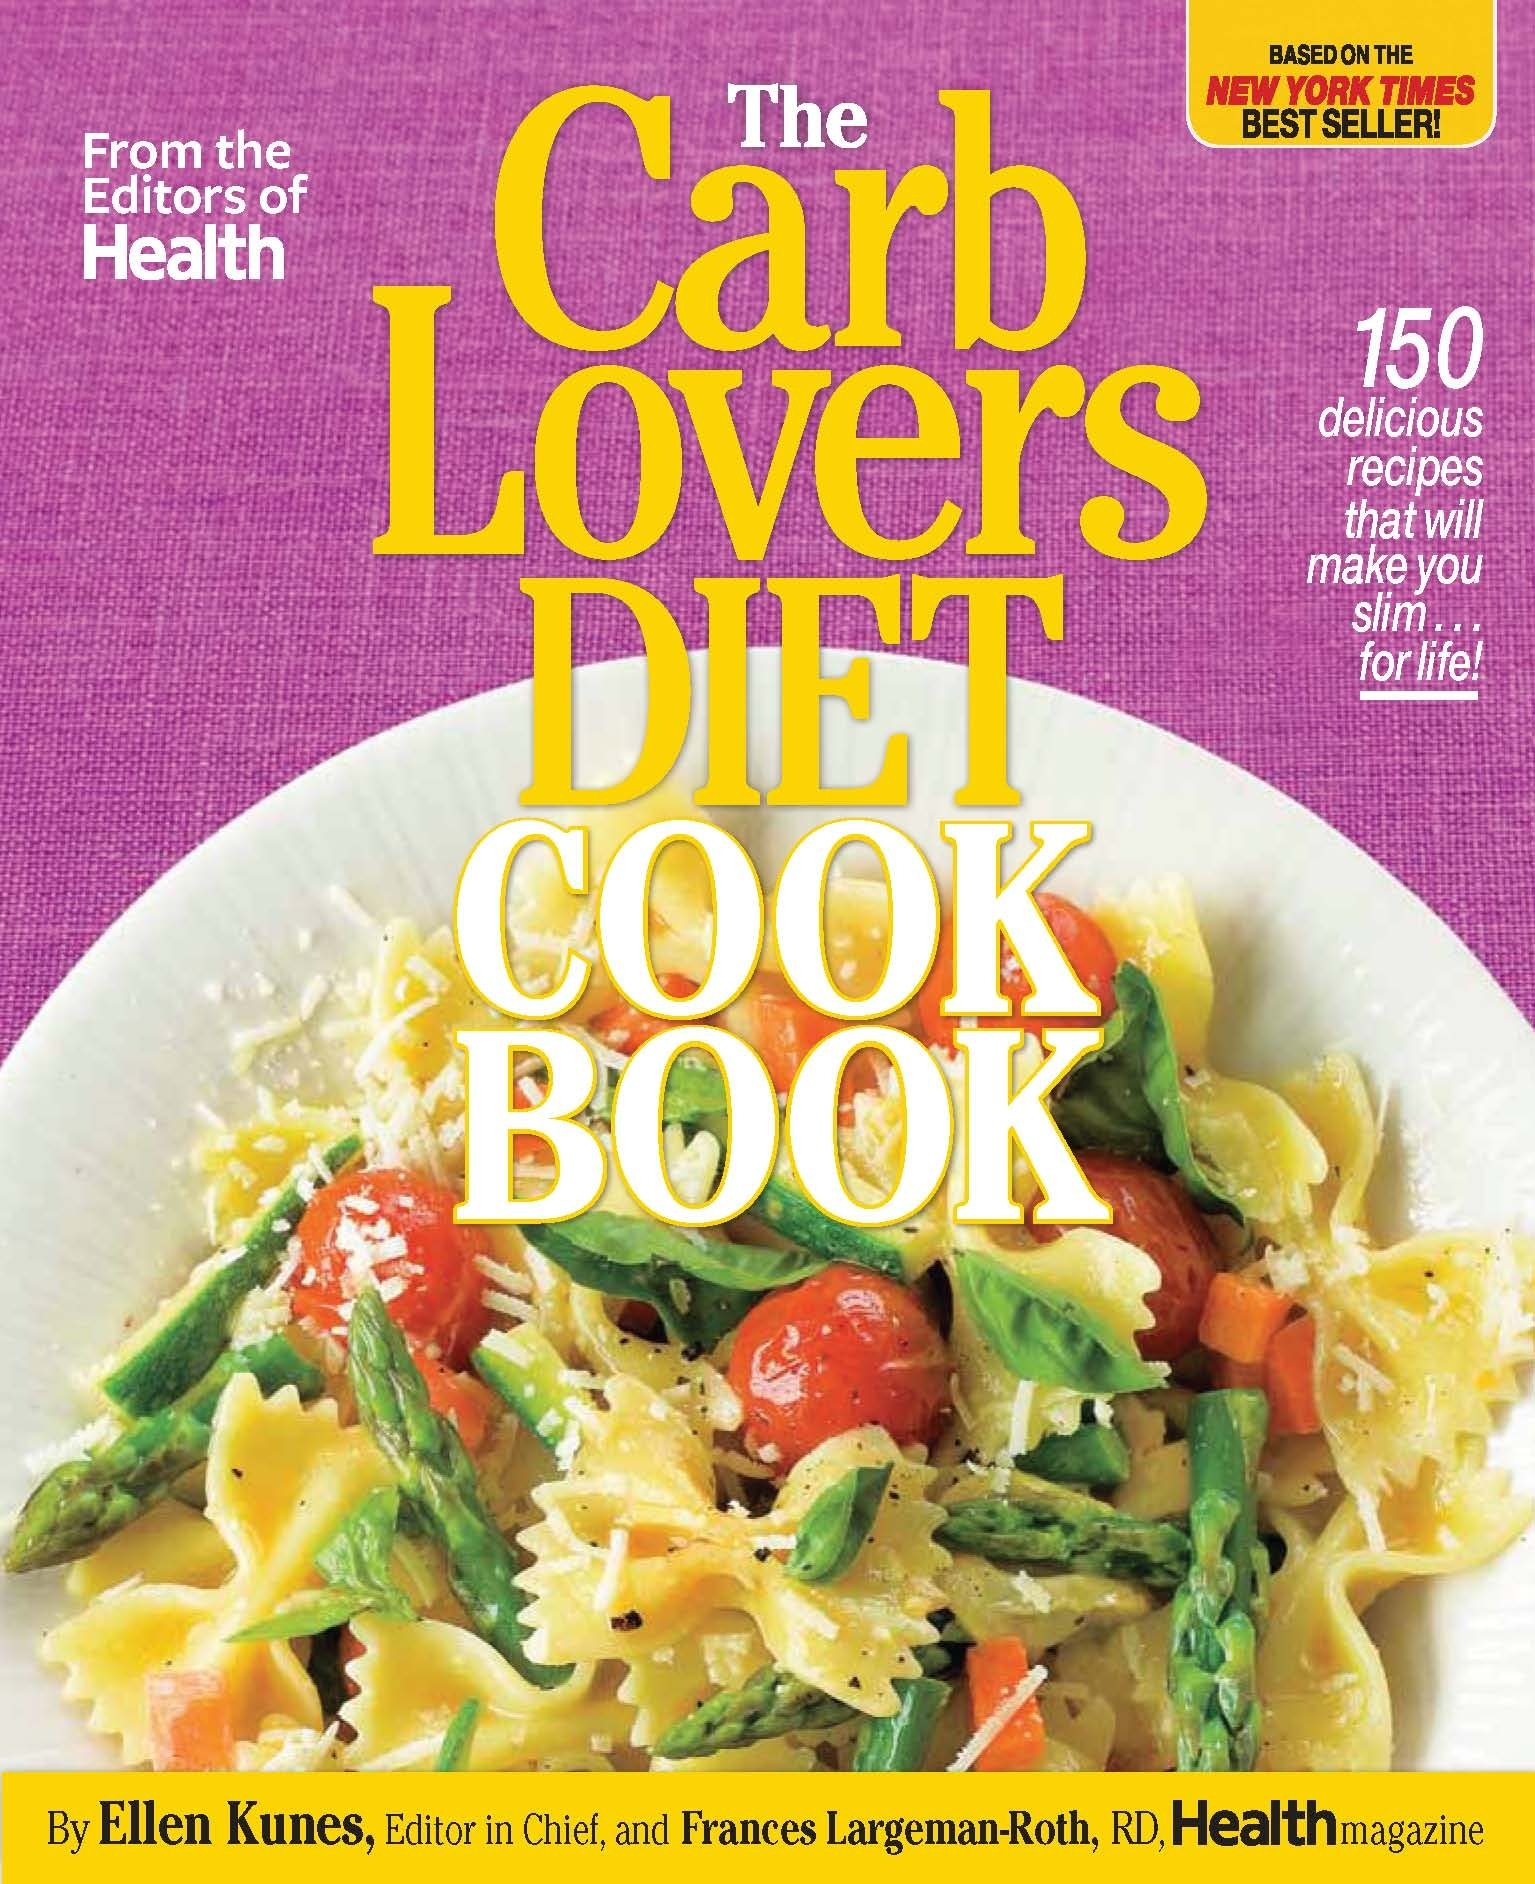 The carblovers diet cookbook 150 delicious recipes that will make the carblovers diet cookbook 150 delicious recipes that will make you slim for life ellen kunes frances largeman roth 9780848734770 amazon forumfinder Choice Image